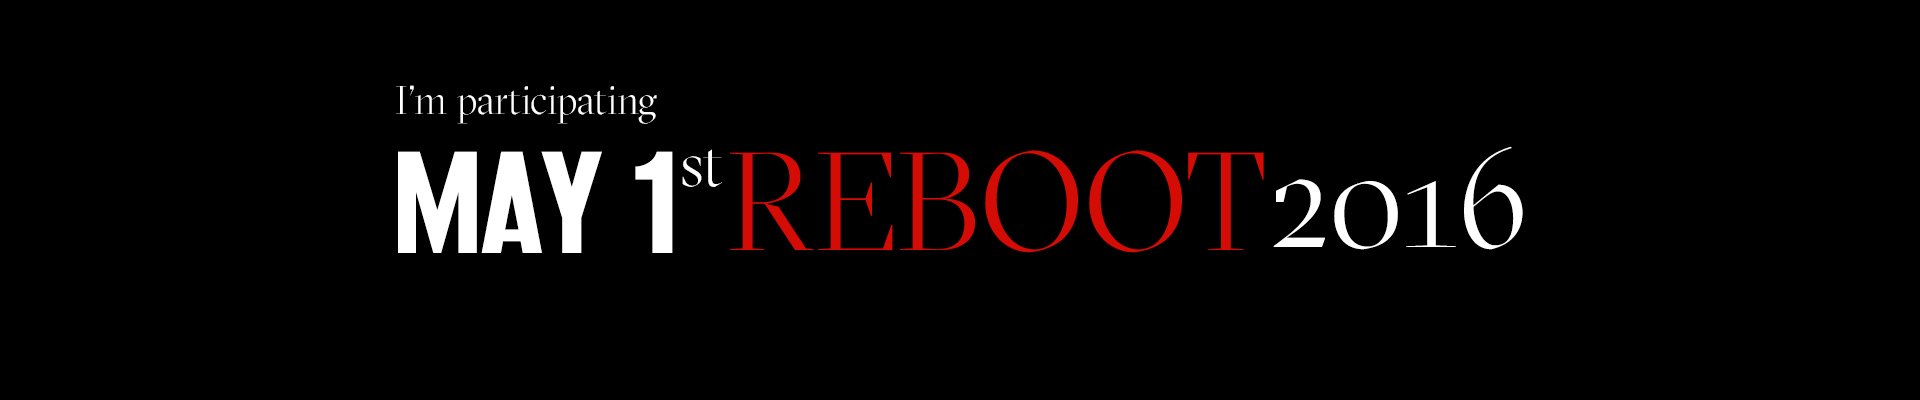 May1reboot_Placeholder